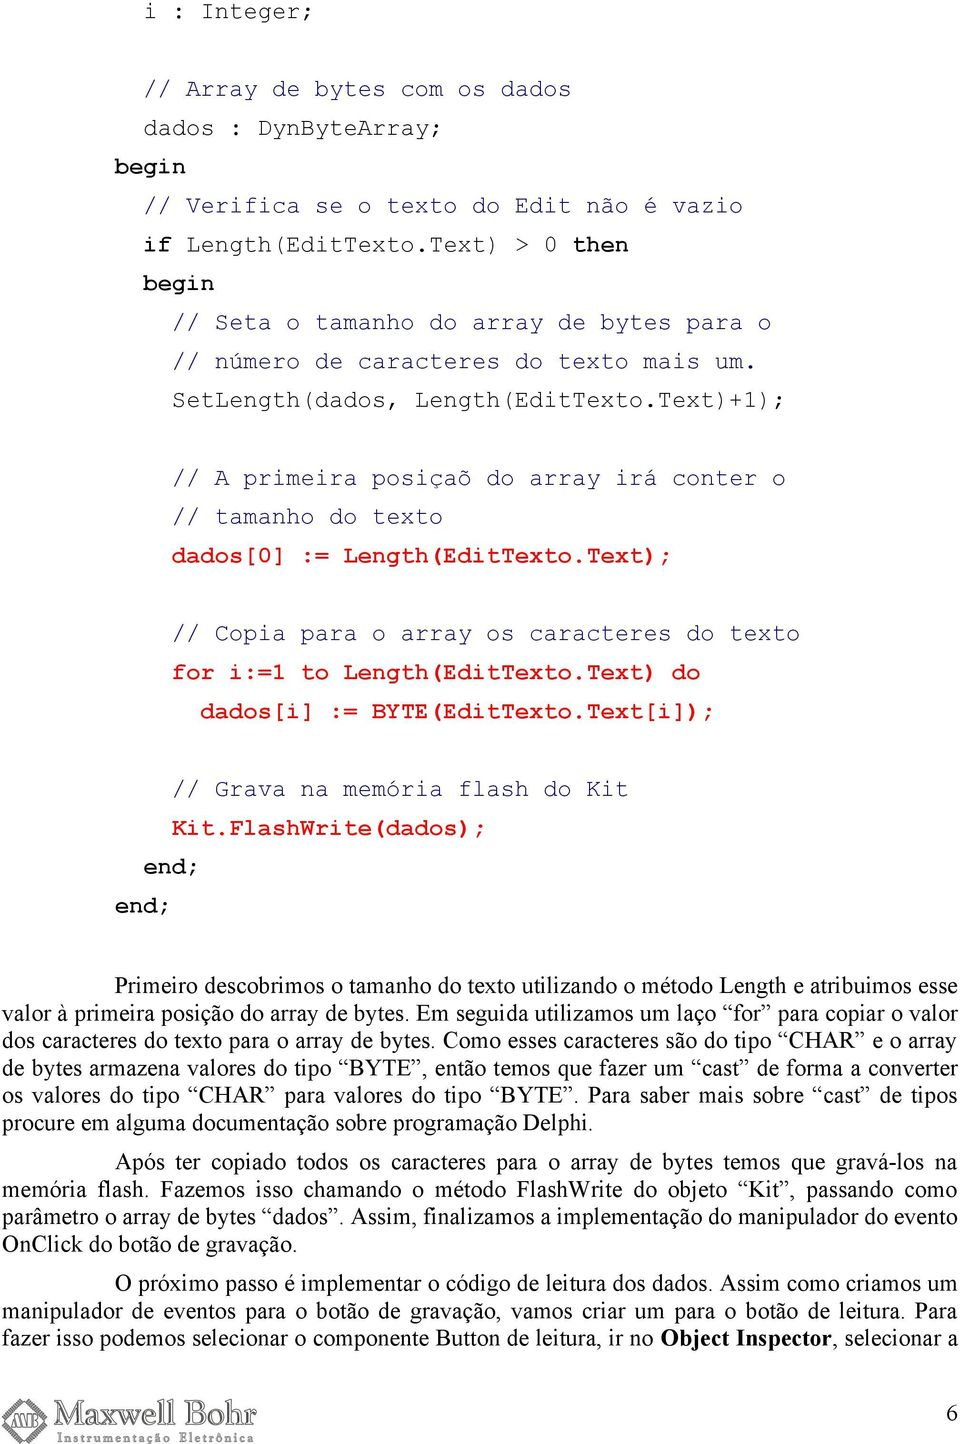 Text)+1); // A primeira posiçaõ do array irá conter o // tamanho do texto dados[0] := Length(EditTexto.Text); // Copia para o array os caracteres do texto for i:=1 to Length(EditTexto.